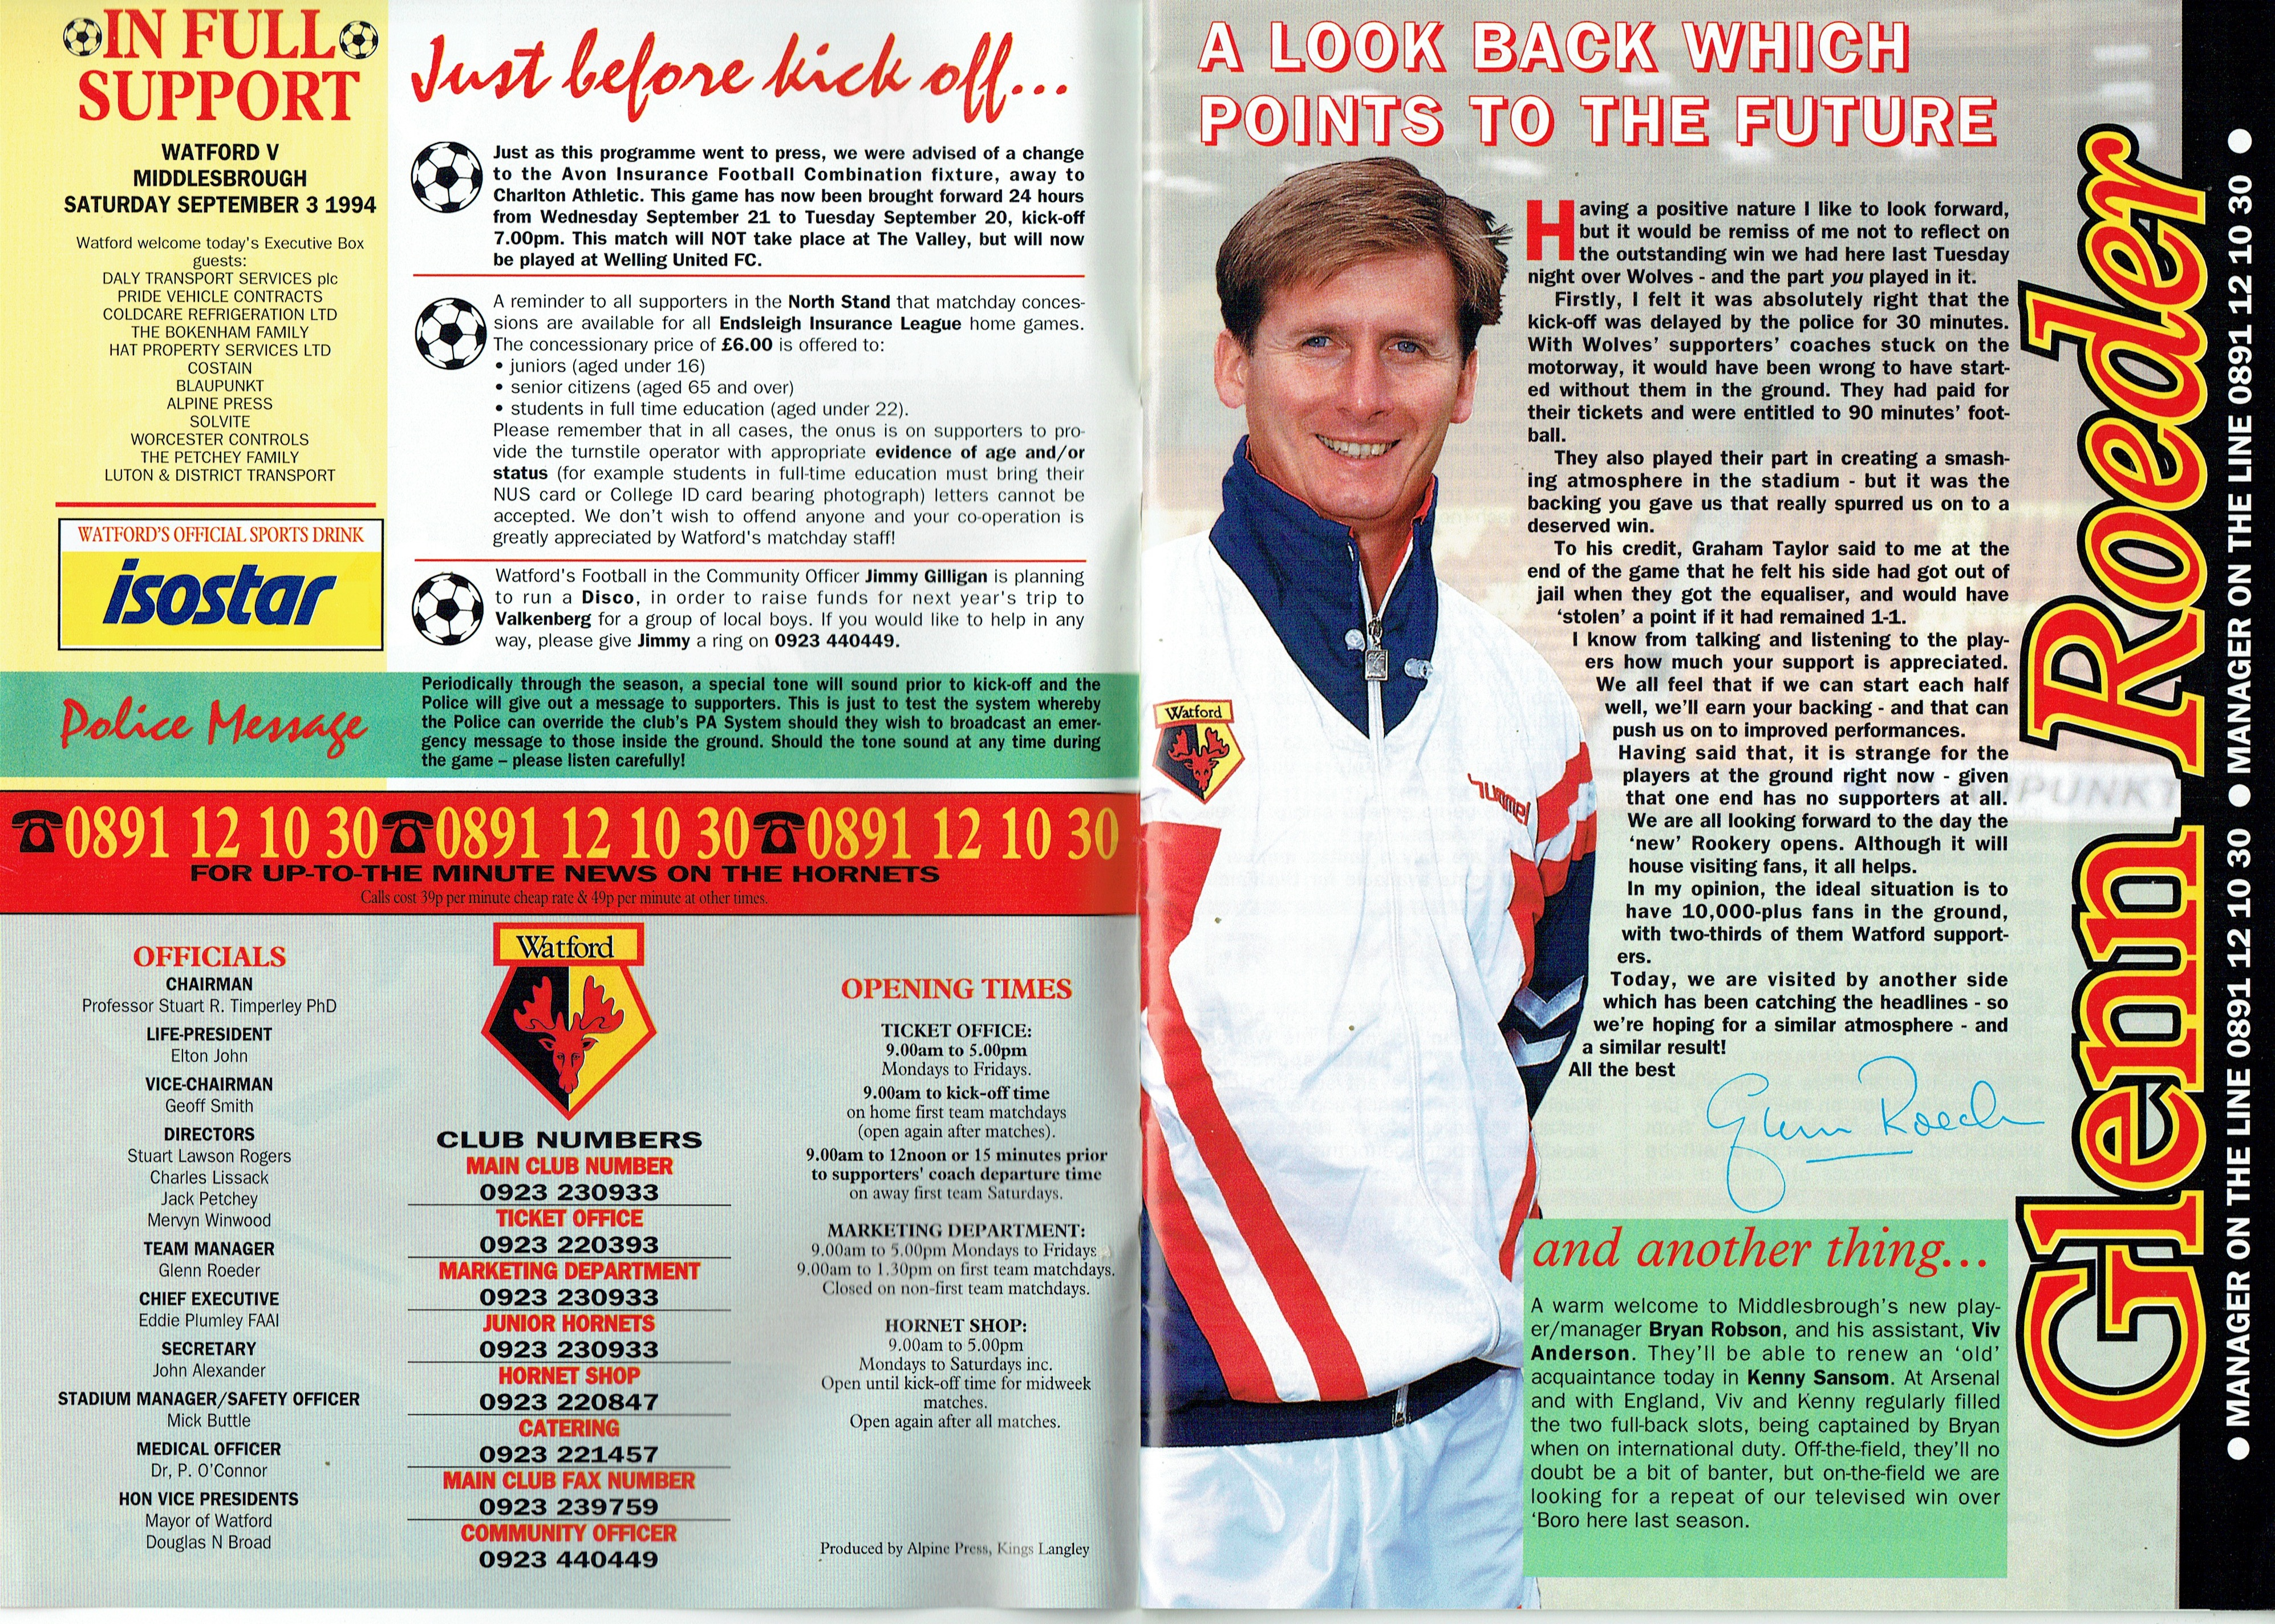 3rd September 1994- New Division One, Watford 1